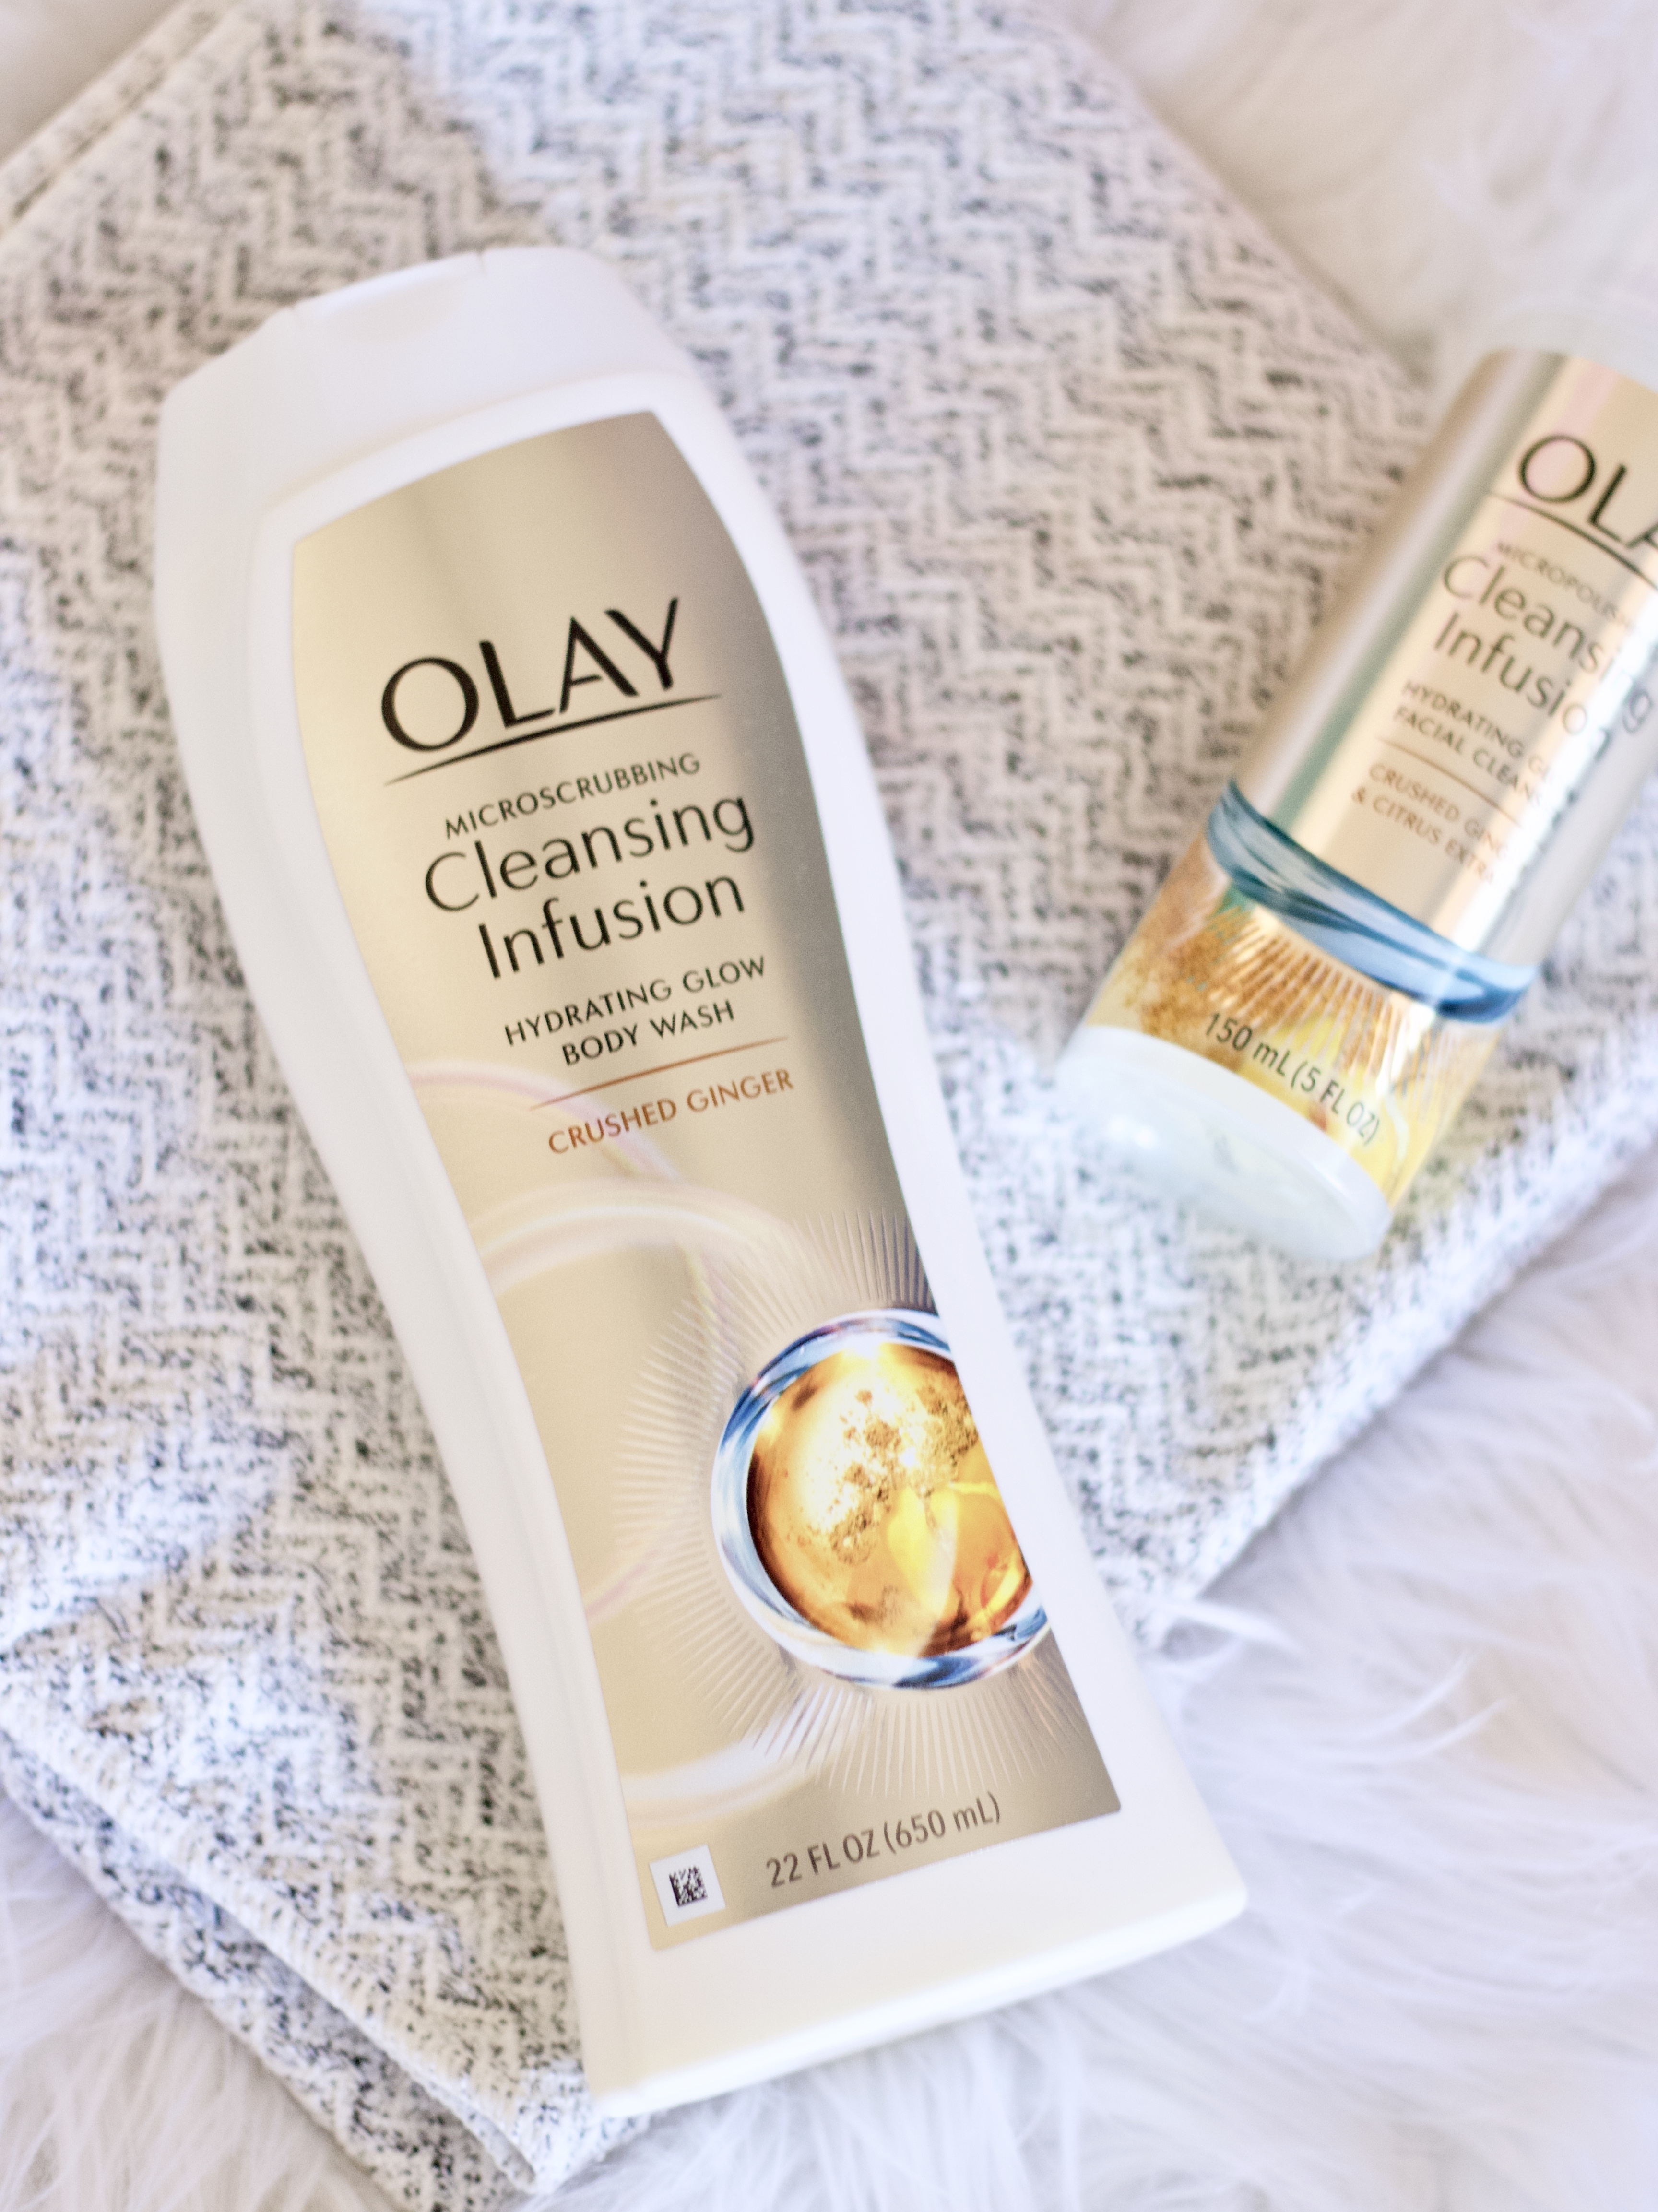 glowing skin for spring #glowup #olay #affordableskincare